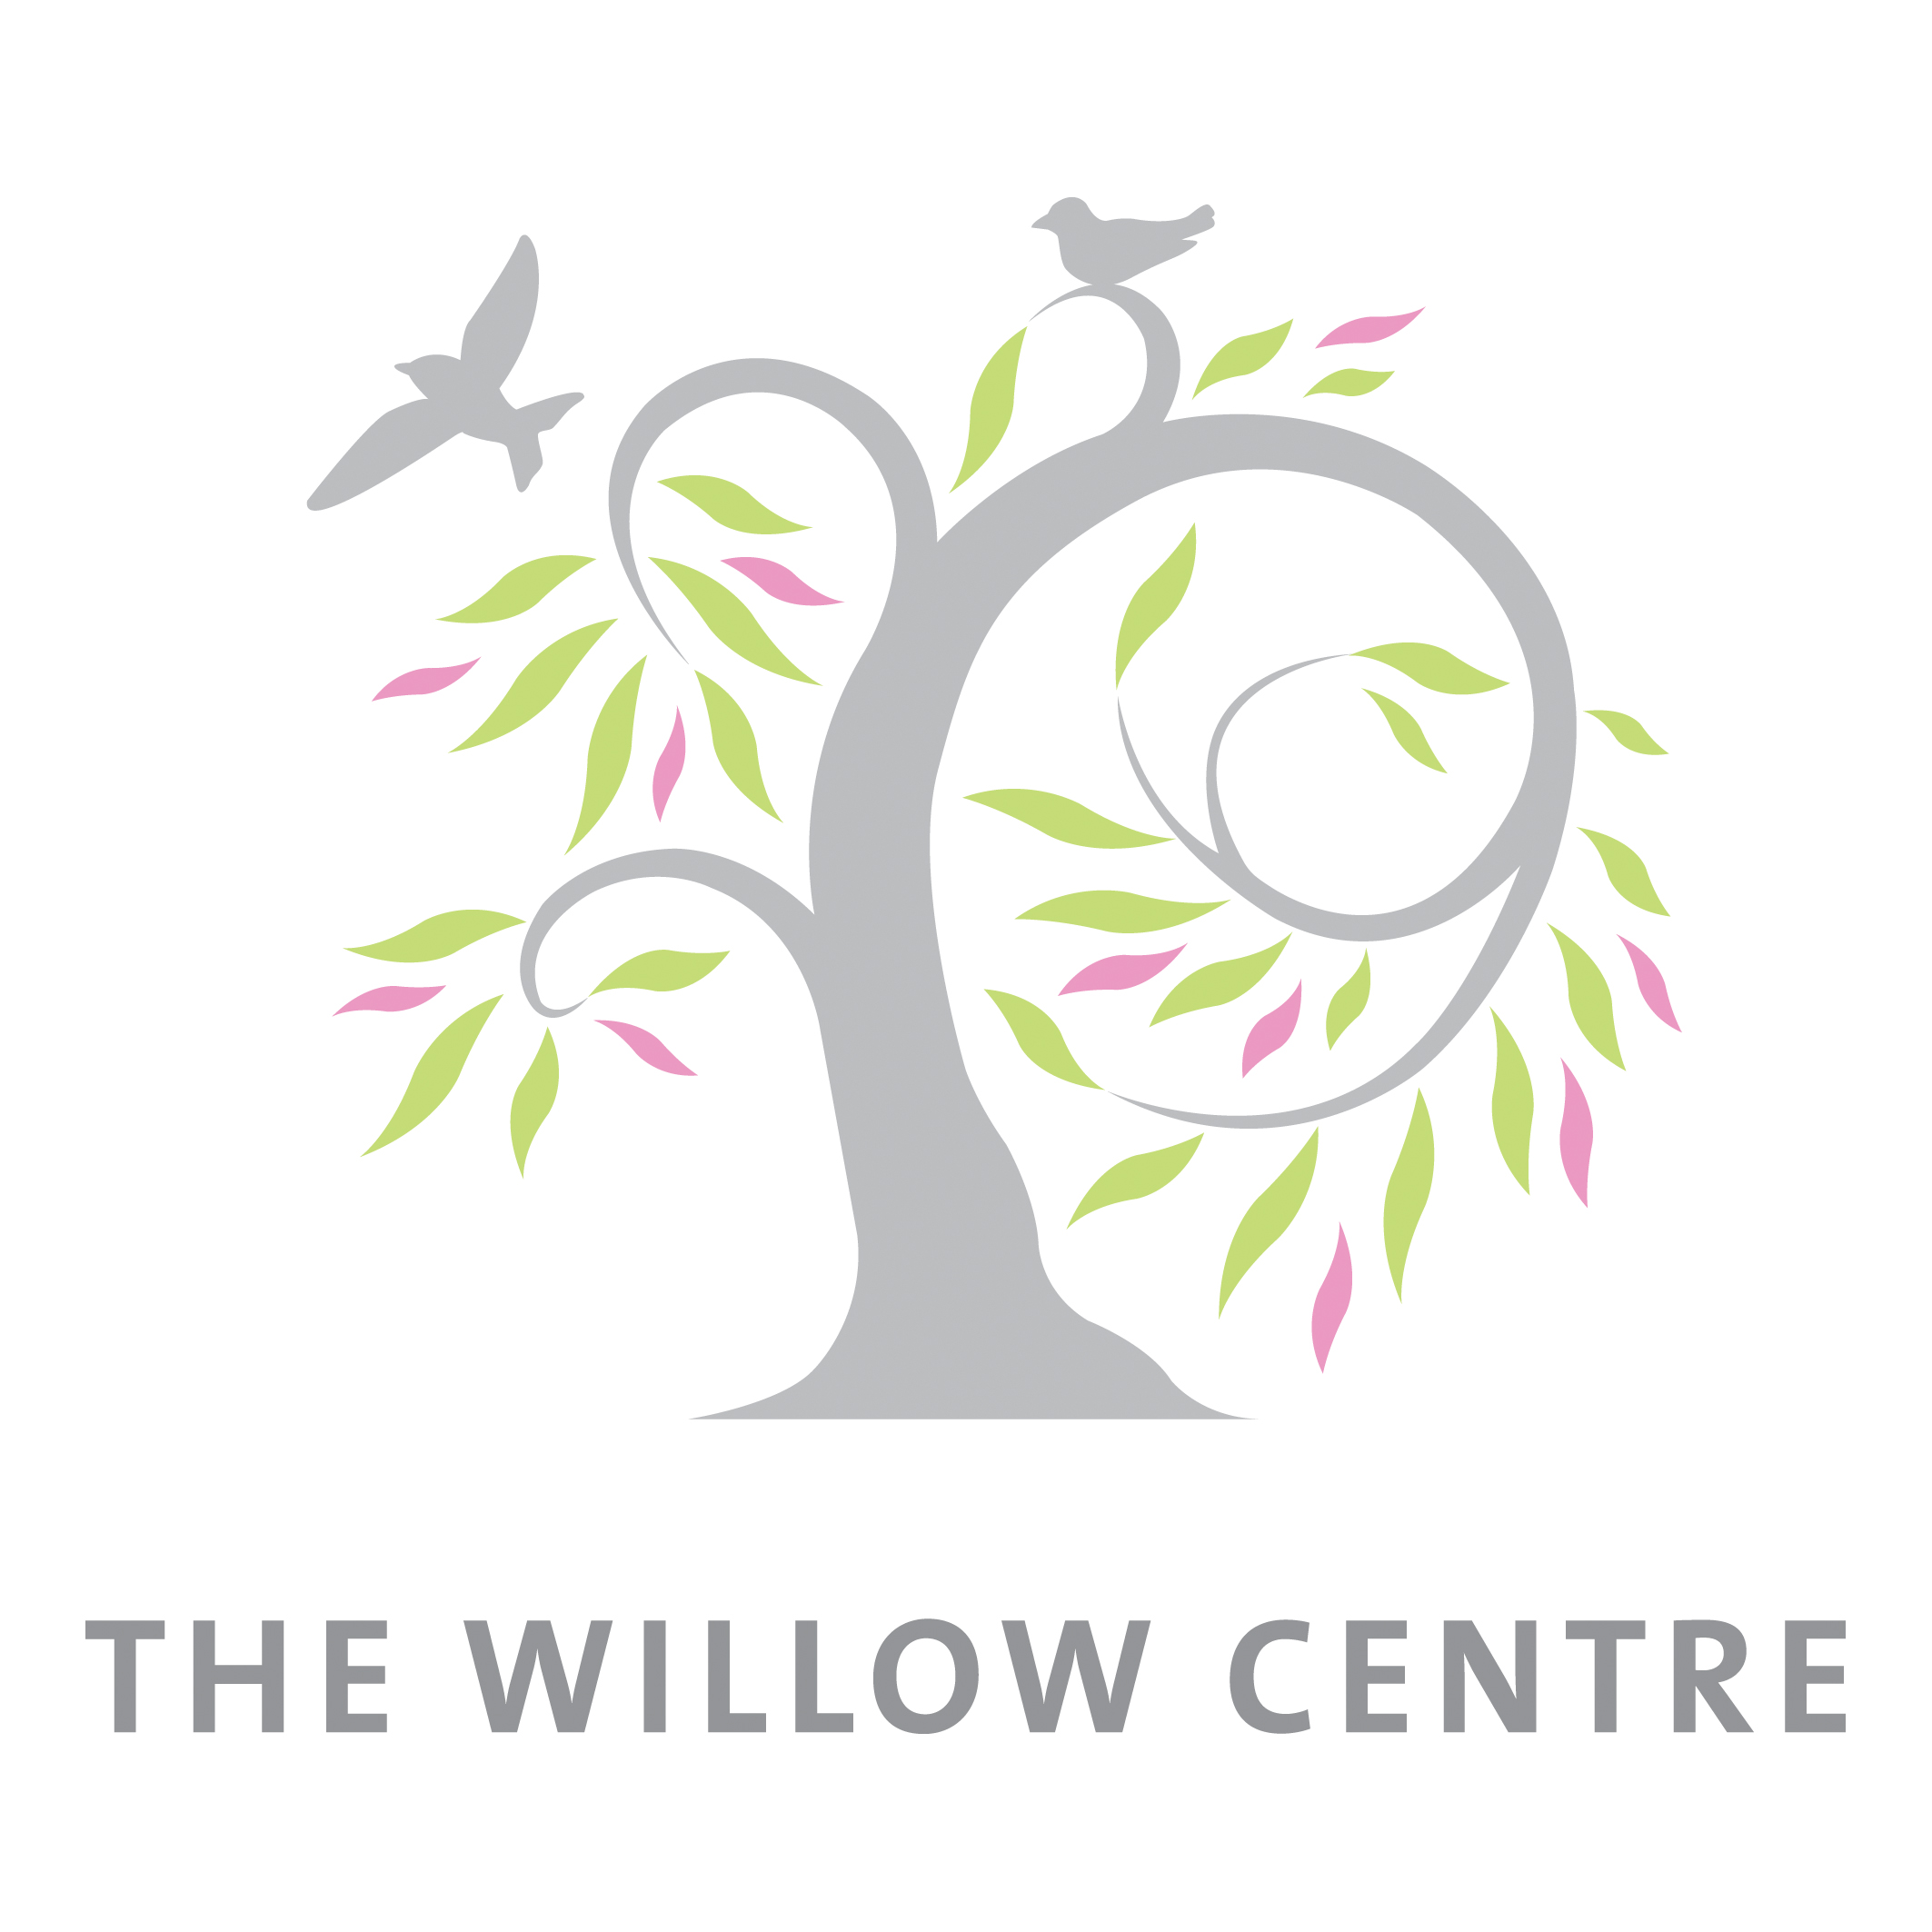 The Willow Centre